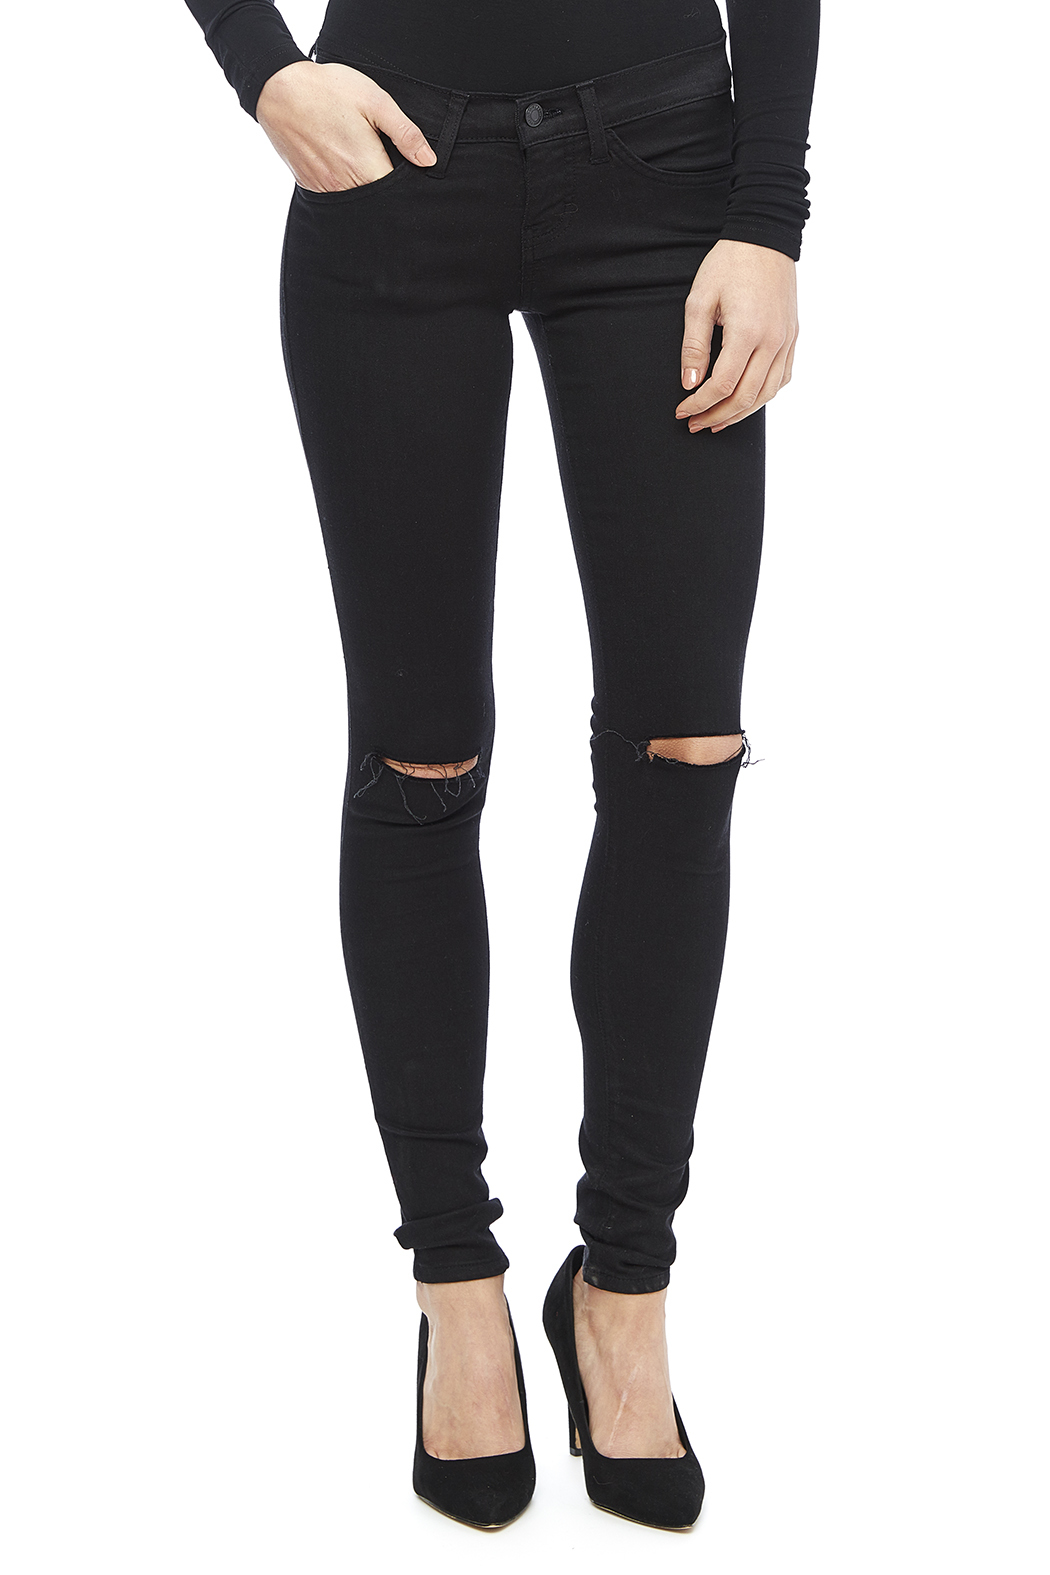 Jet Black Distressed Skinny Jean